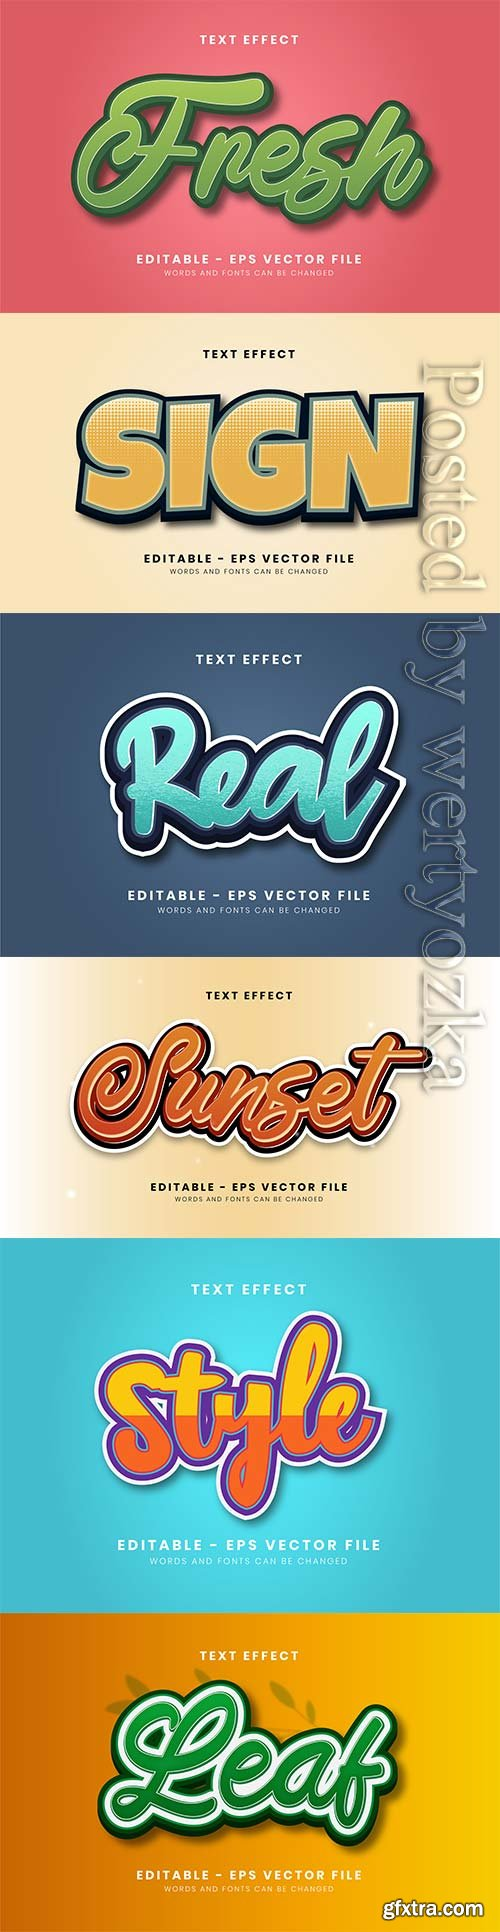 3d editable text style effect vector vol 295